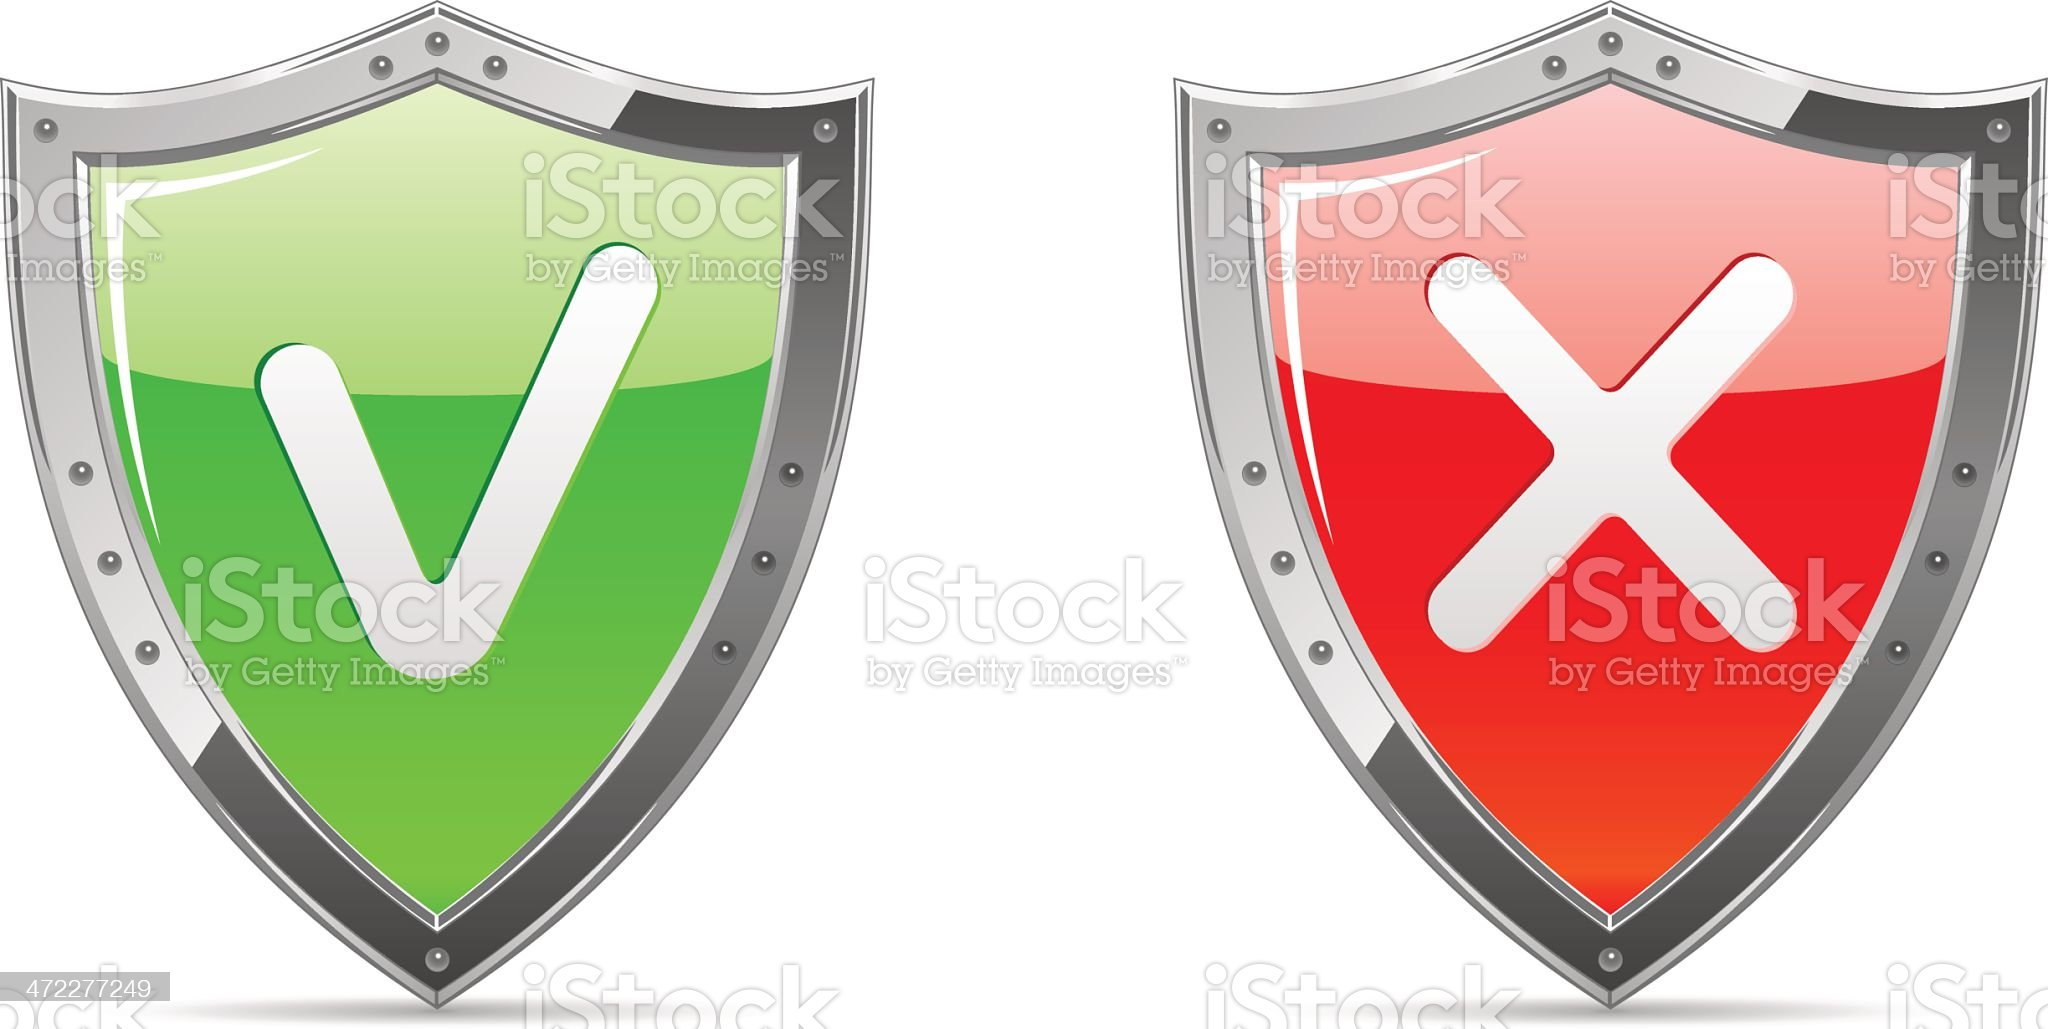 Shields with Check Marks royalty-free stock vector art